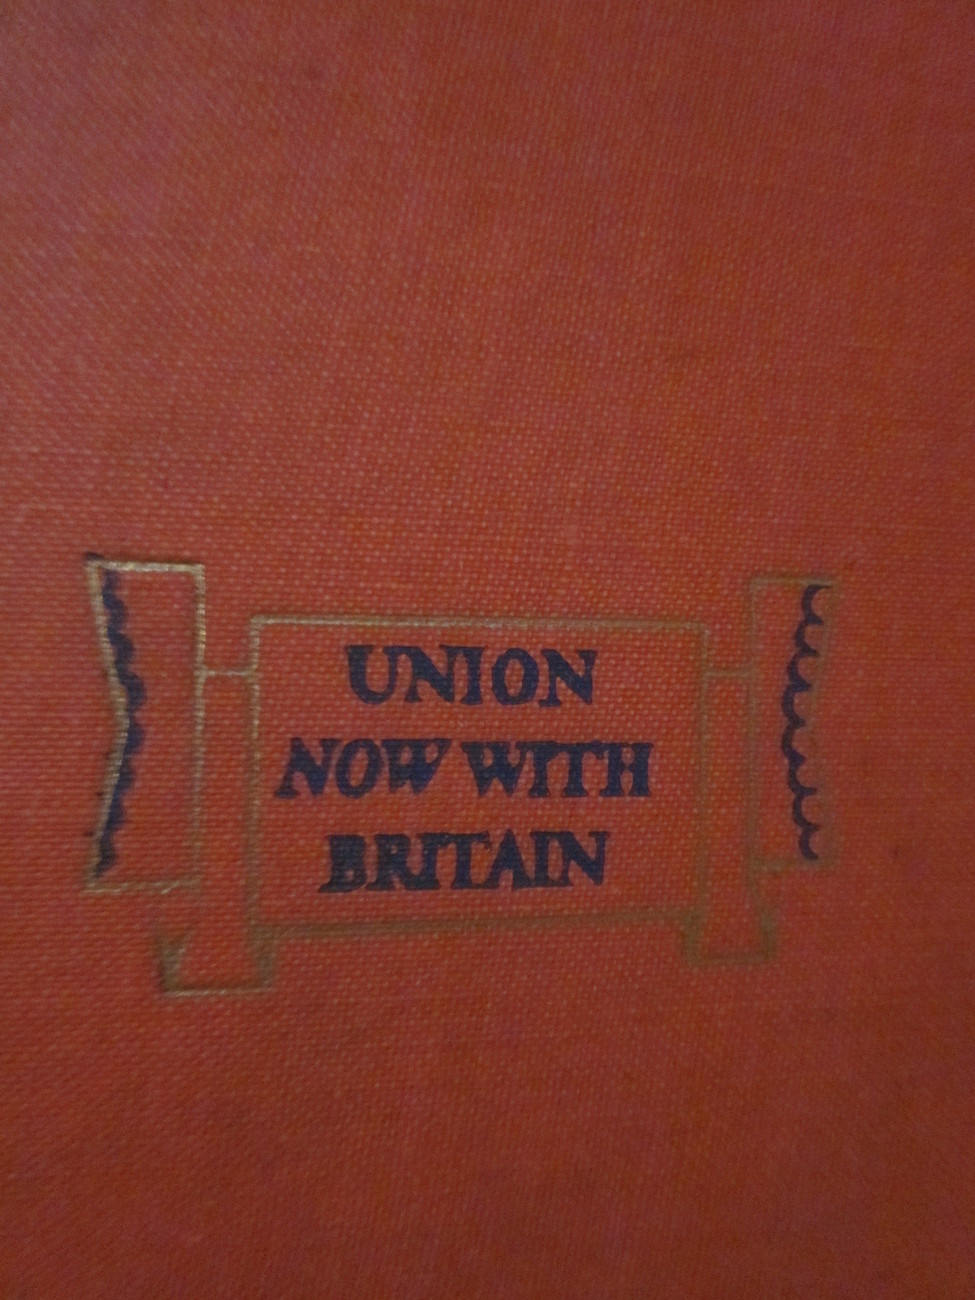 Union Now With Britain Book by Clarence Streit 1941